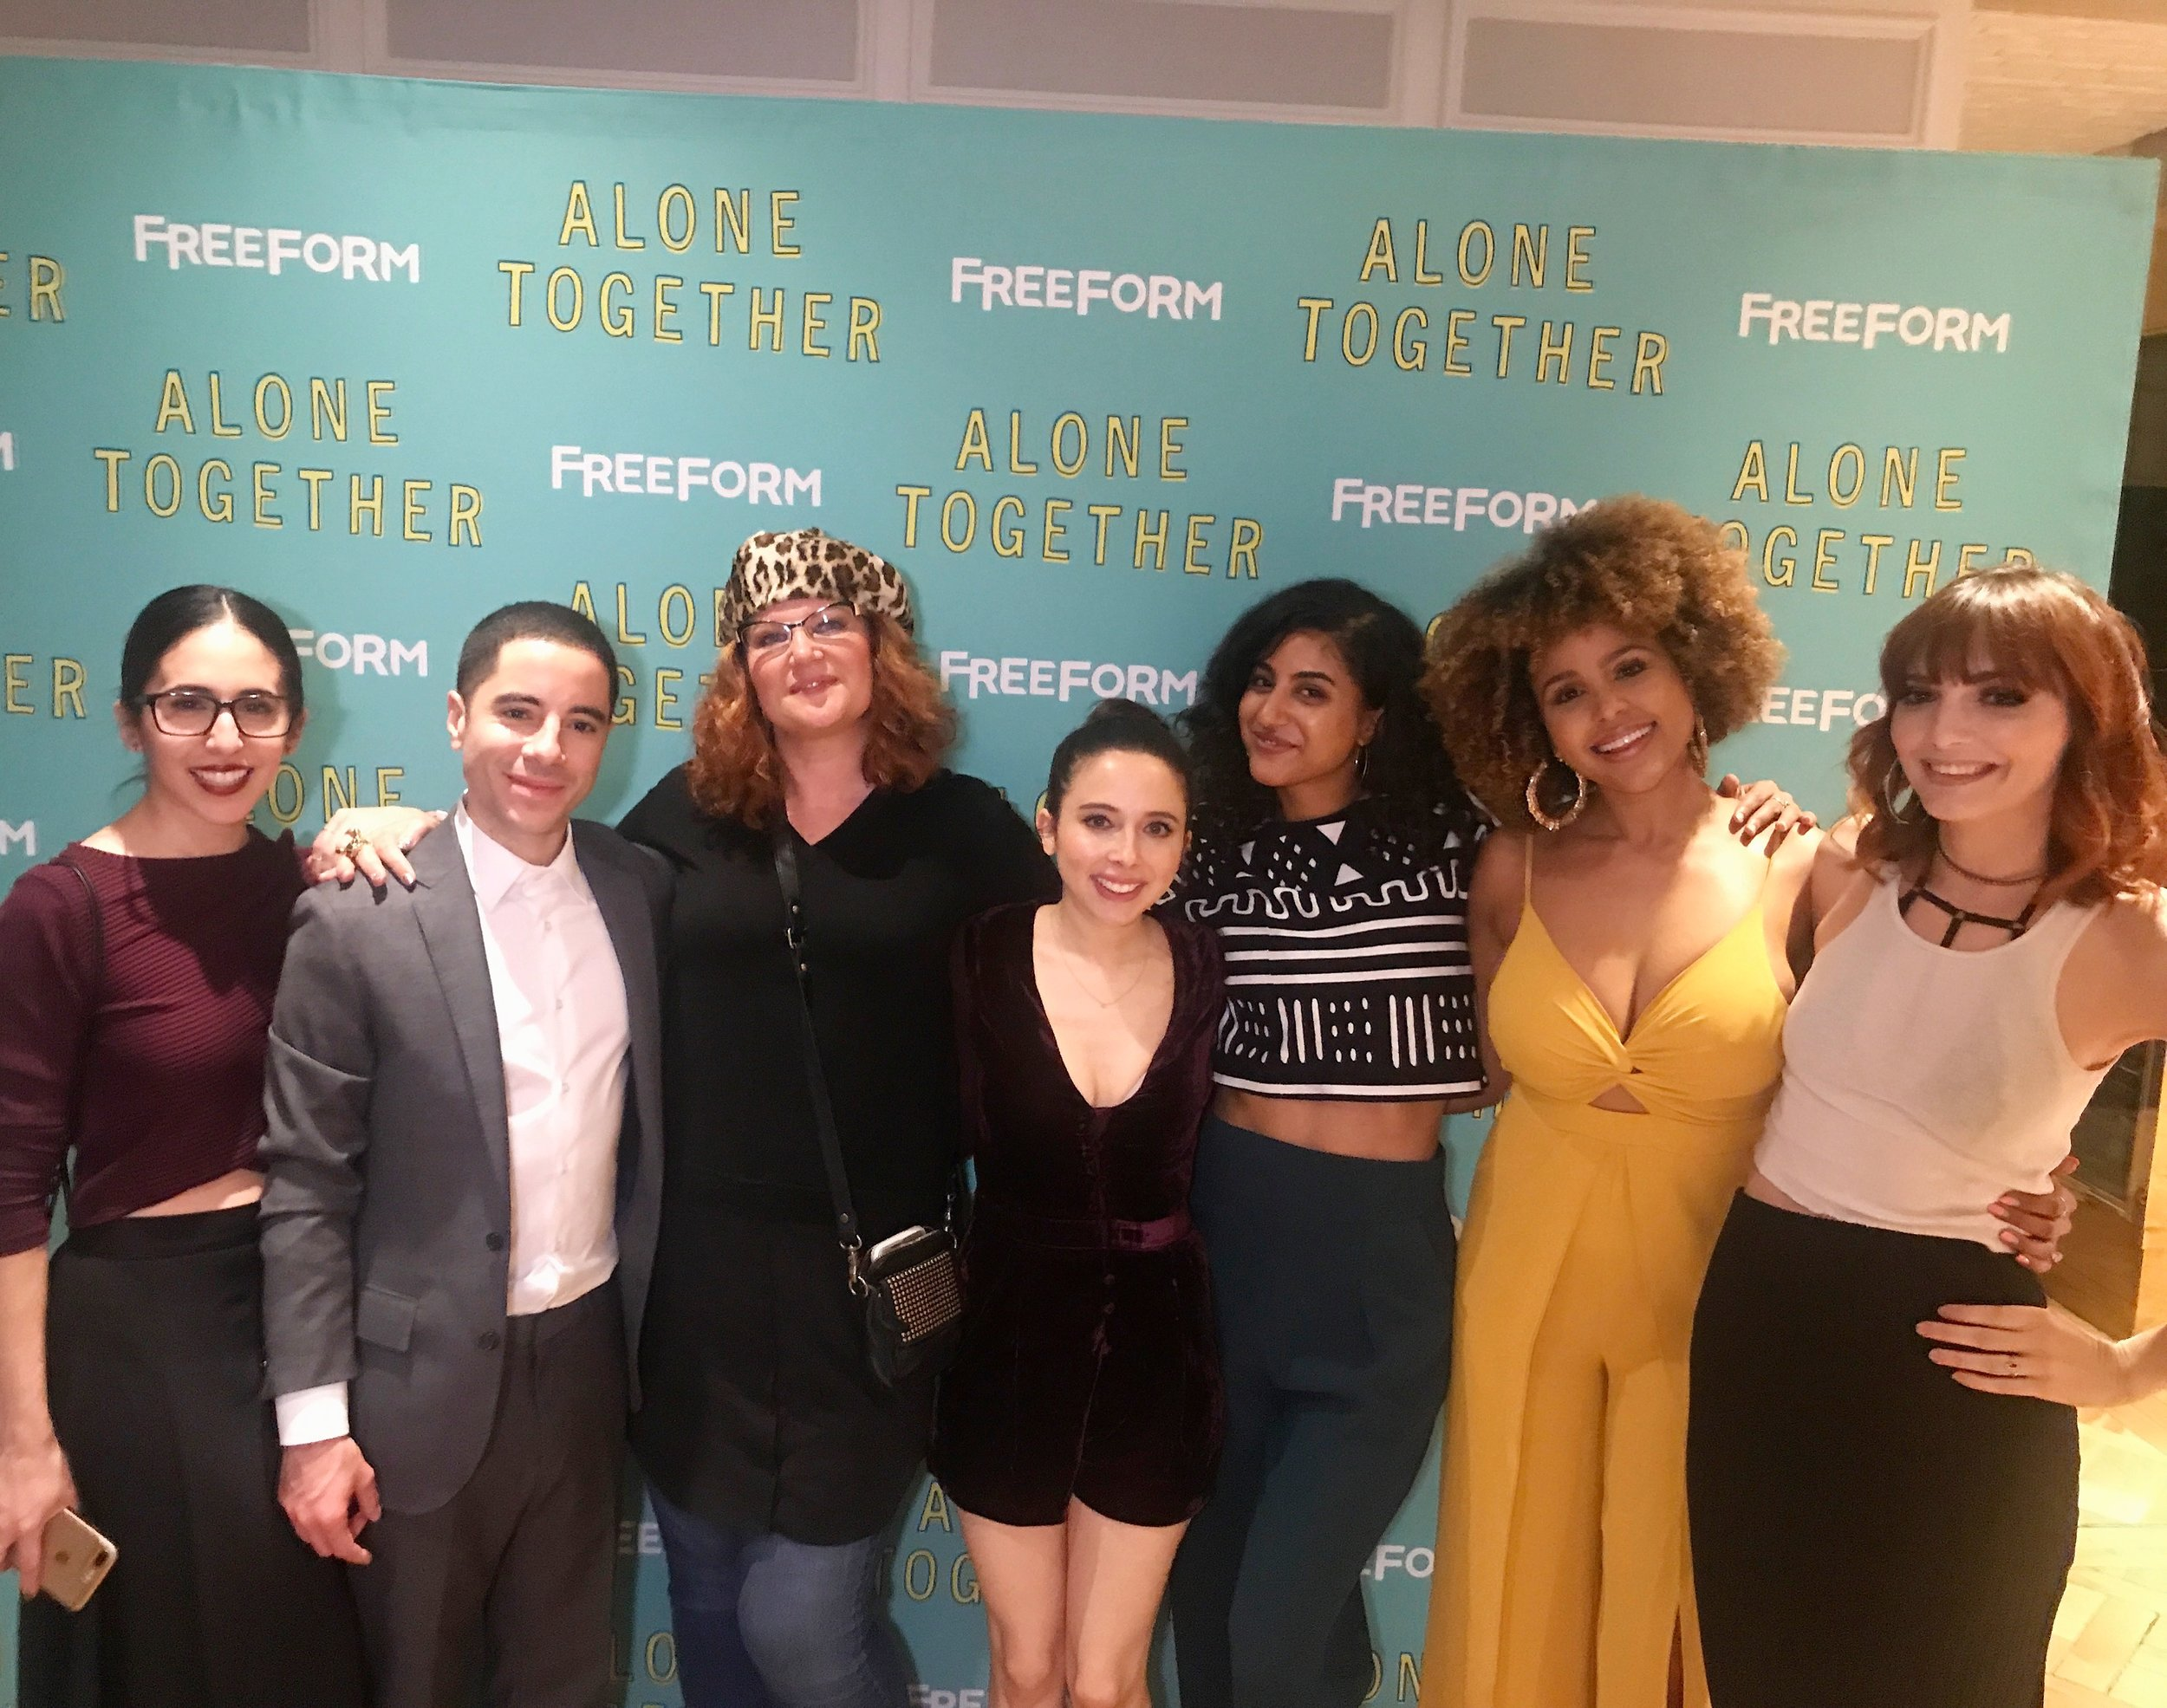 SO many beauts! From L to R: Gabrielle Ruiz, Benji Aflalo, Makeup artist Kymber Blake, Esther Povistky, Vella Lovell, Hayley Marie Norman, and ME, baby! We are so proud of Esther and excited for  Alone Together !